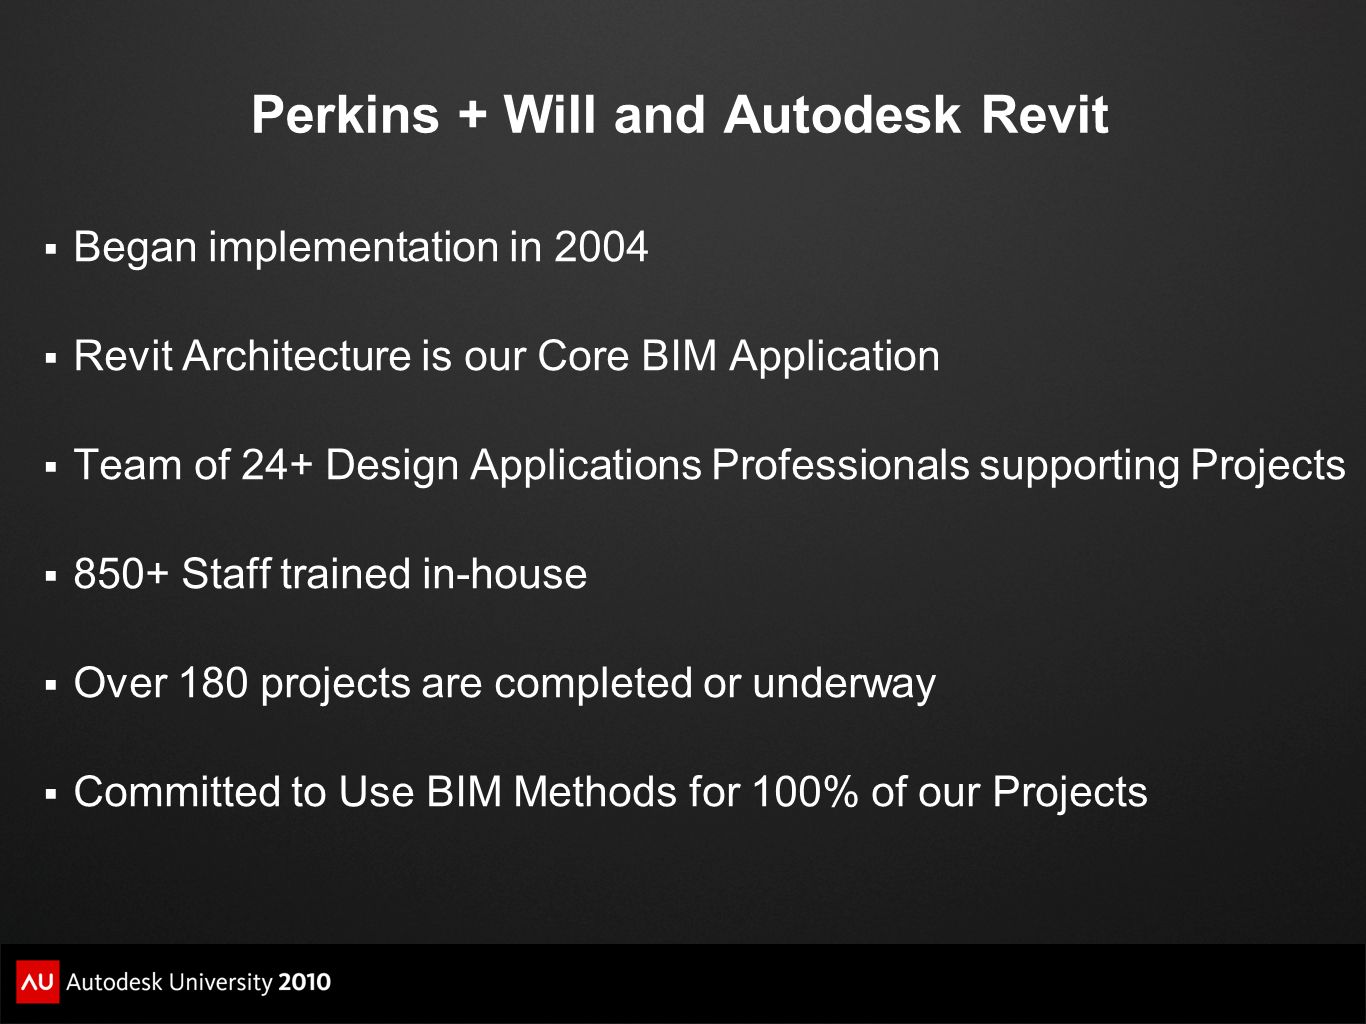 Perkins + Will and Autodesk Revit